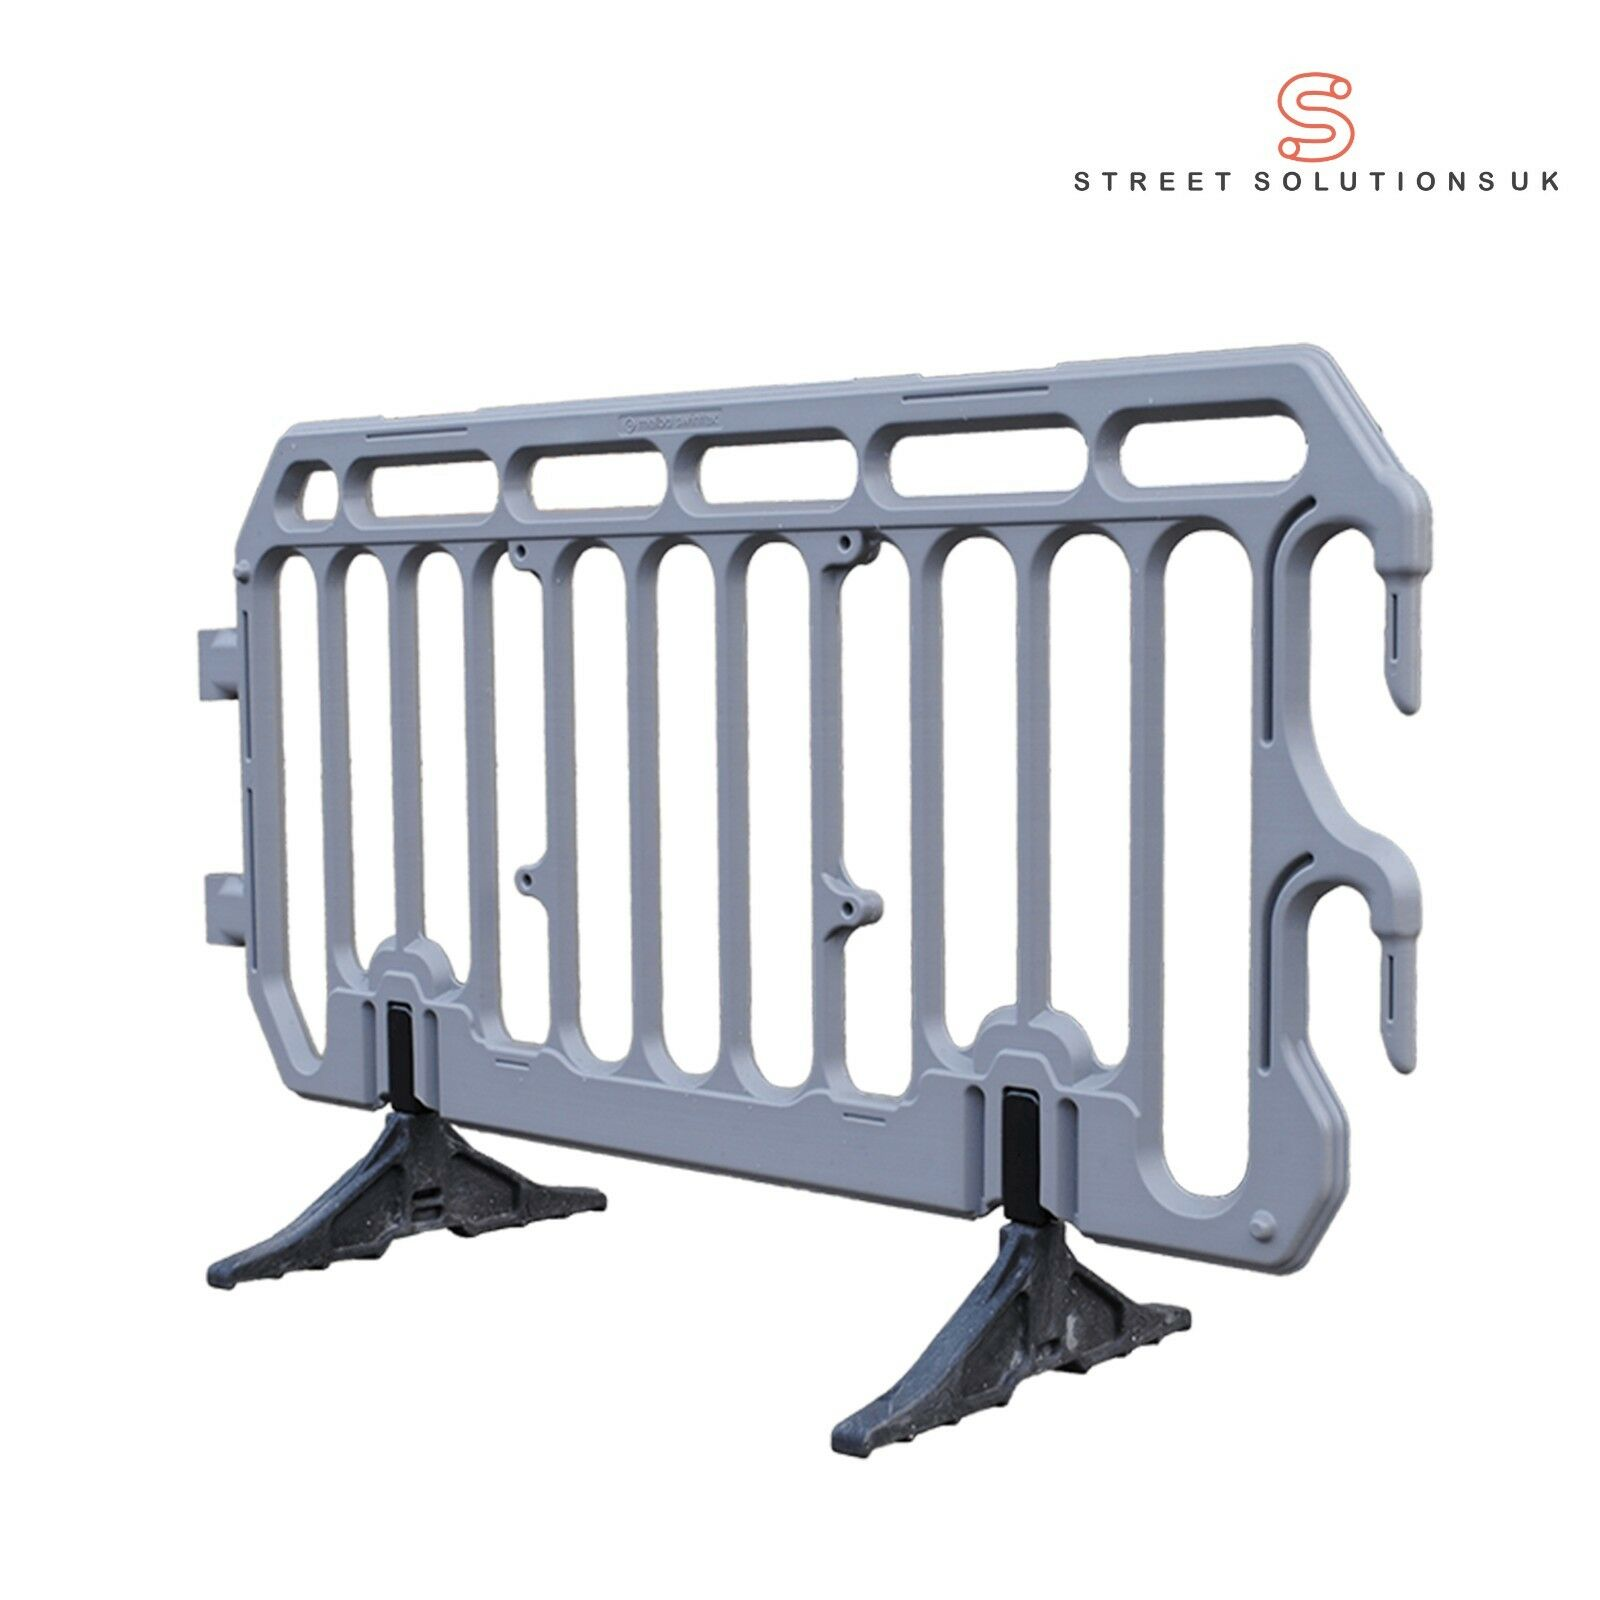 Details about Crowd Control Barrier Plastic 2m Pedestrian Traffic  Management & Event NEW 2019